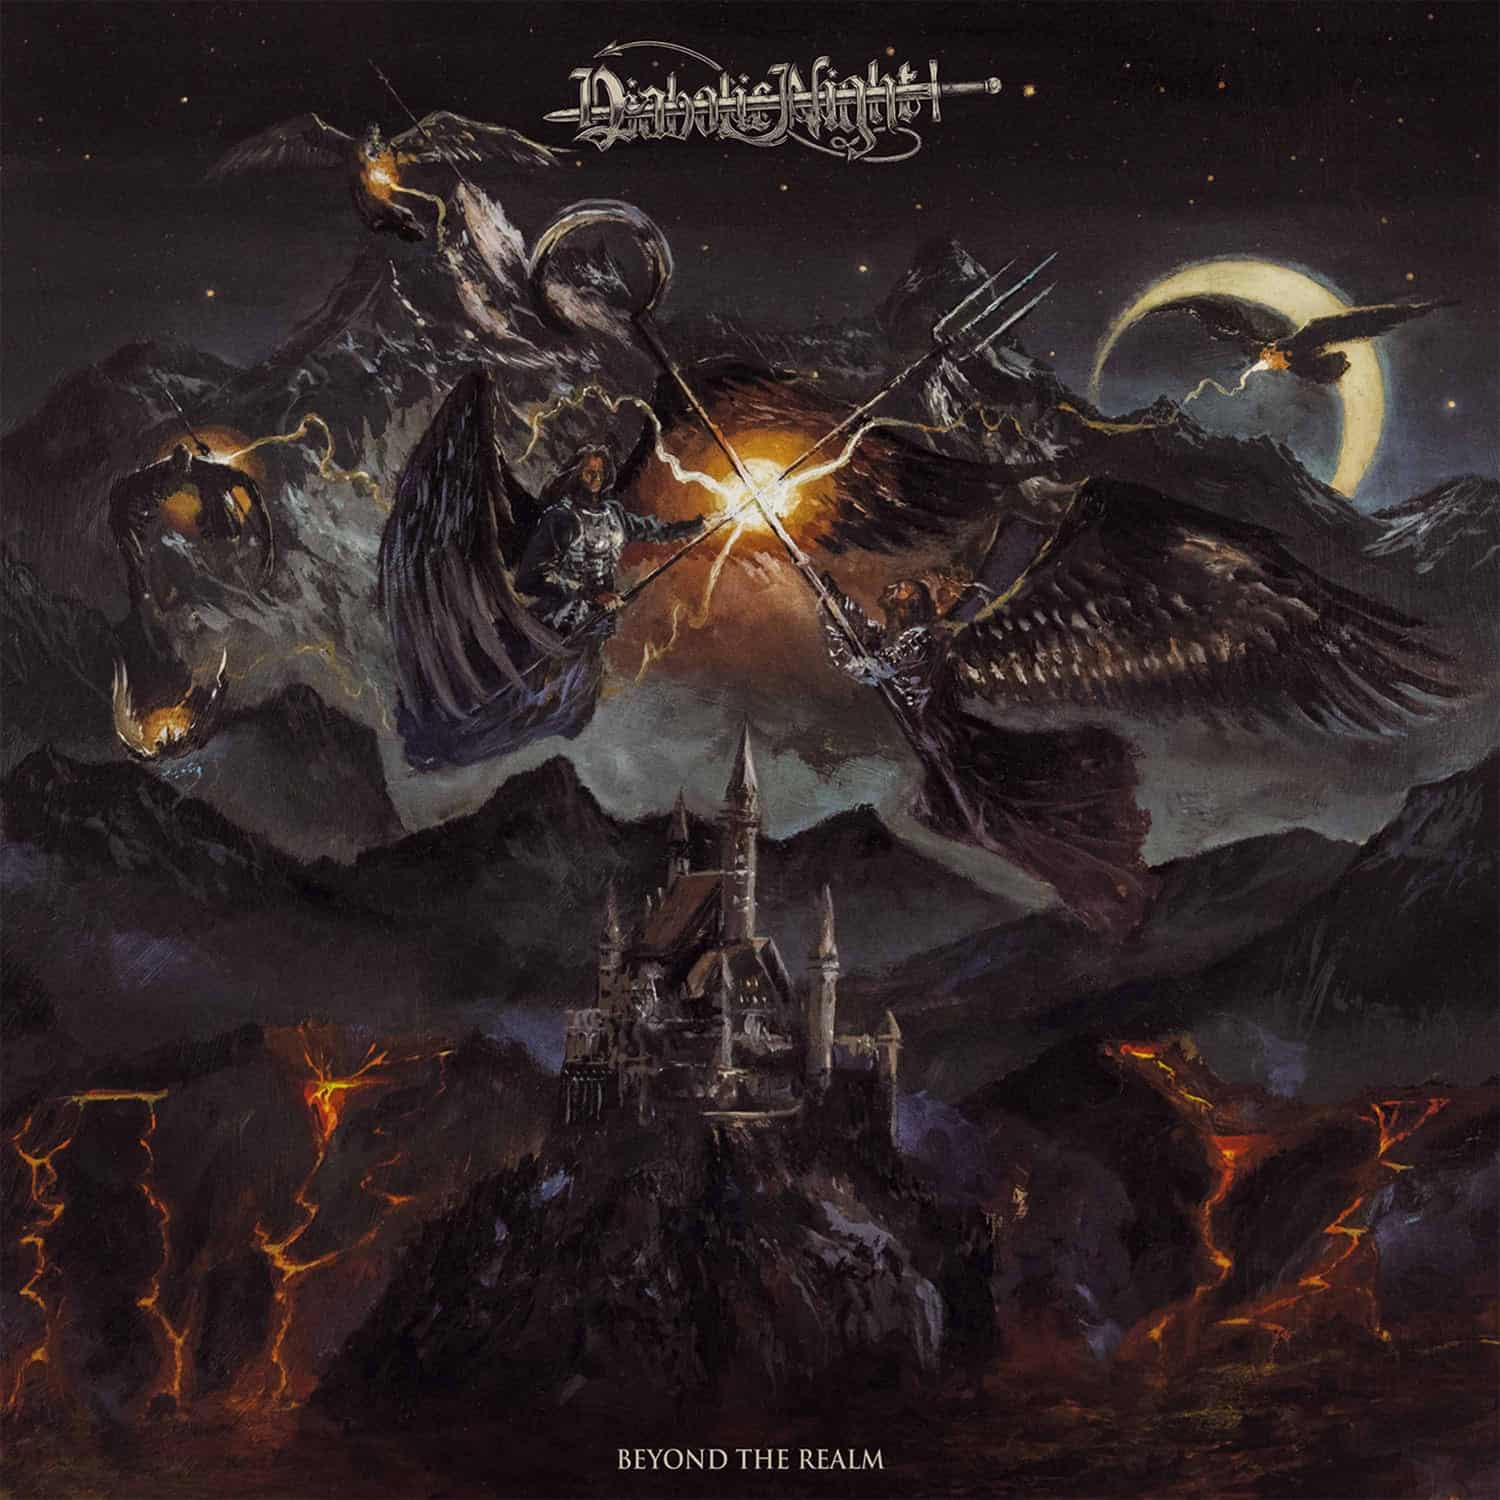 Album Review: Diabolic Night - Beyond The Realm (High Roller